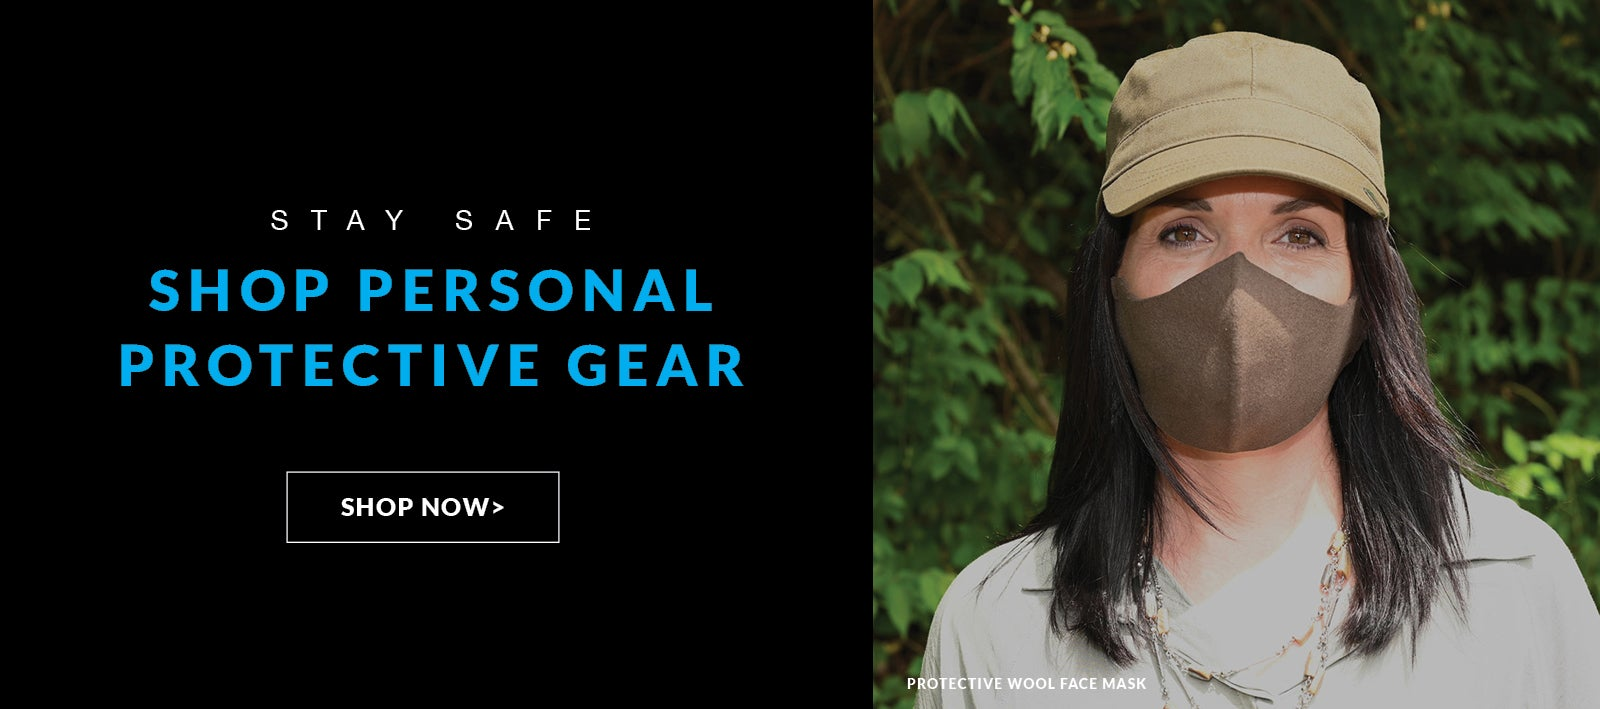 Stay Safe - Shop Protective Gear